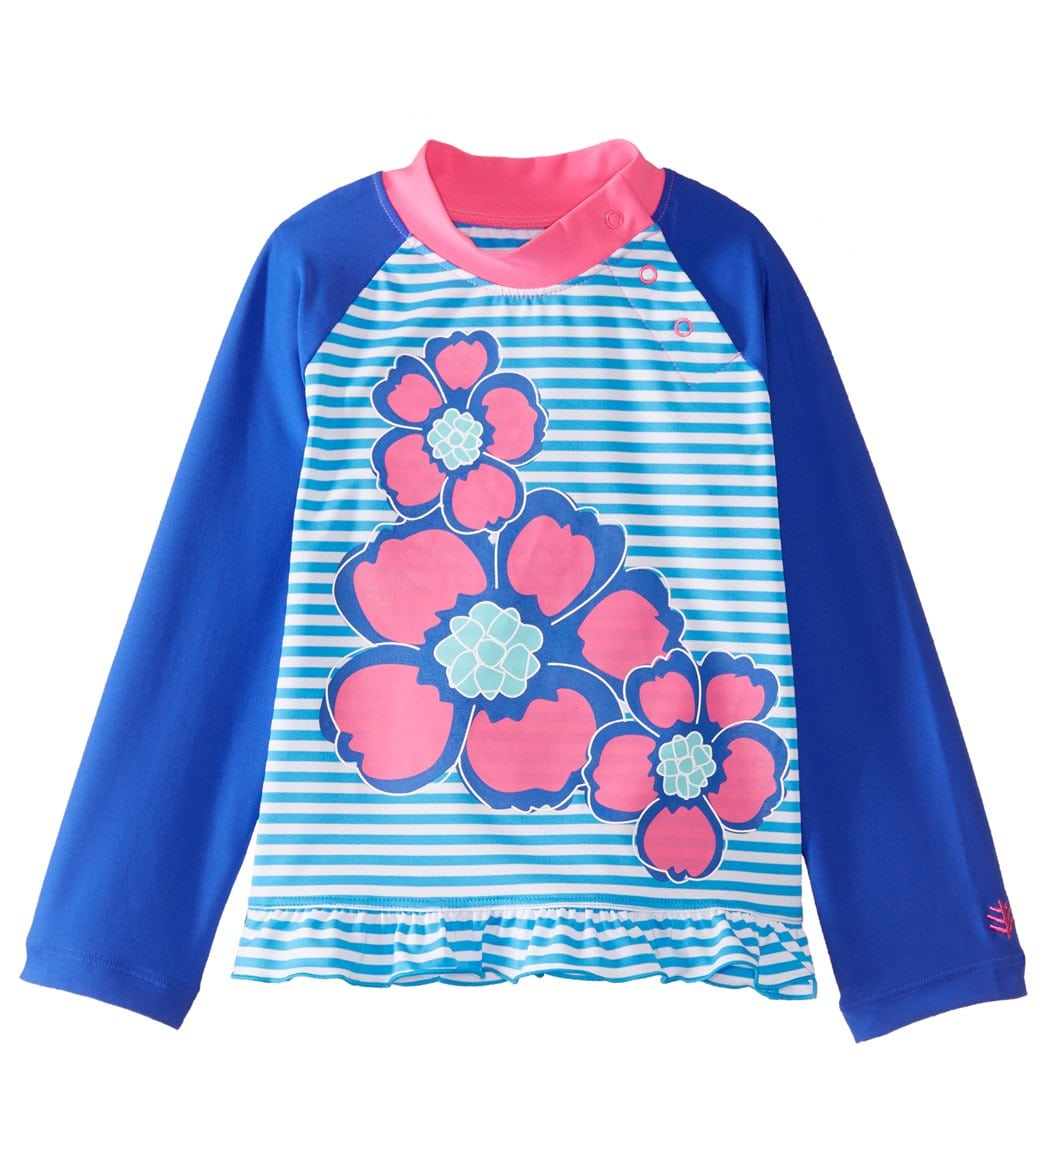 ea9219d8d9266 Coolibar Girls' UPF 50+ Ruffle Swim Shirt (6mos-3T) at SwimOutlet.com